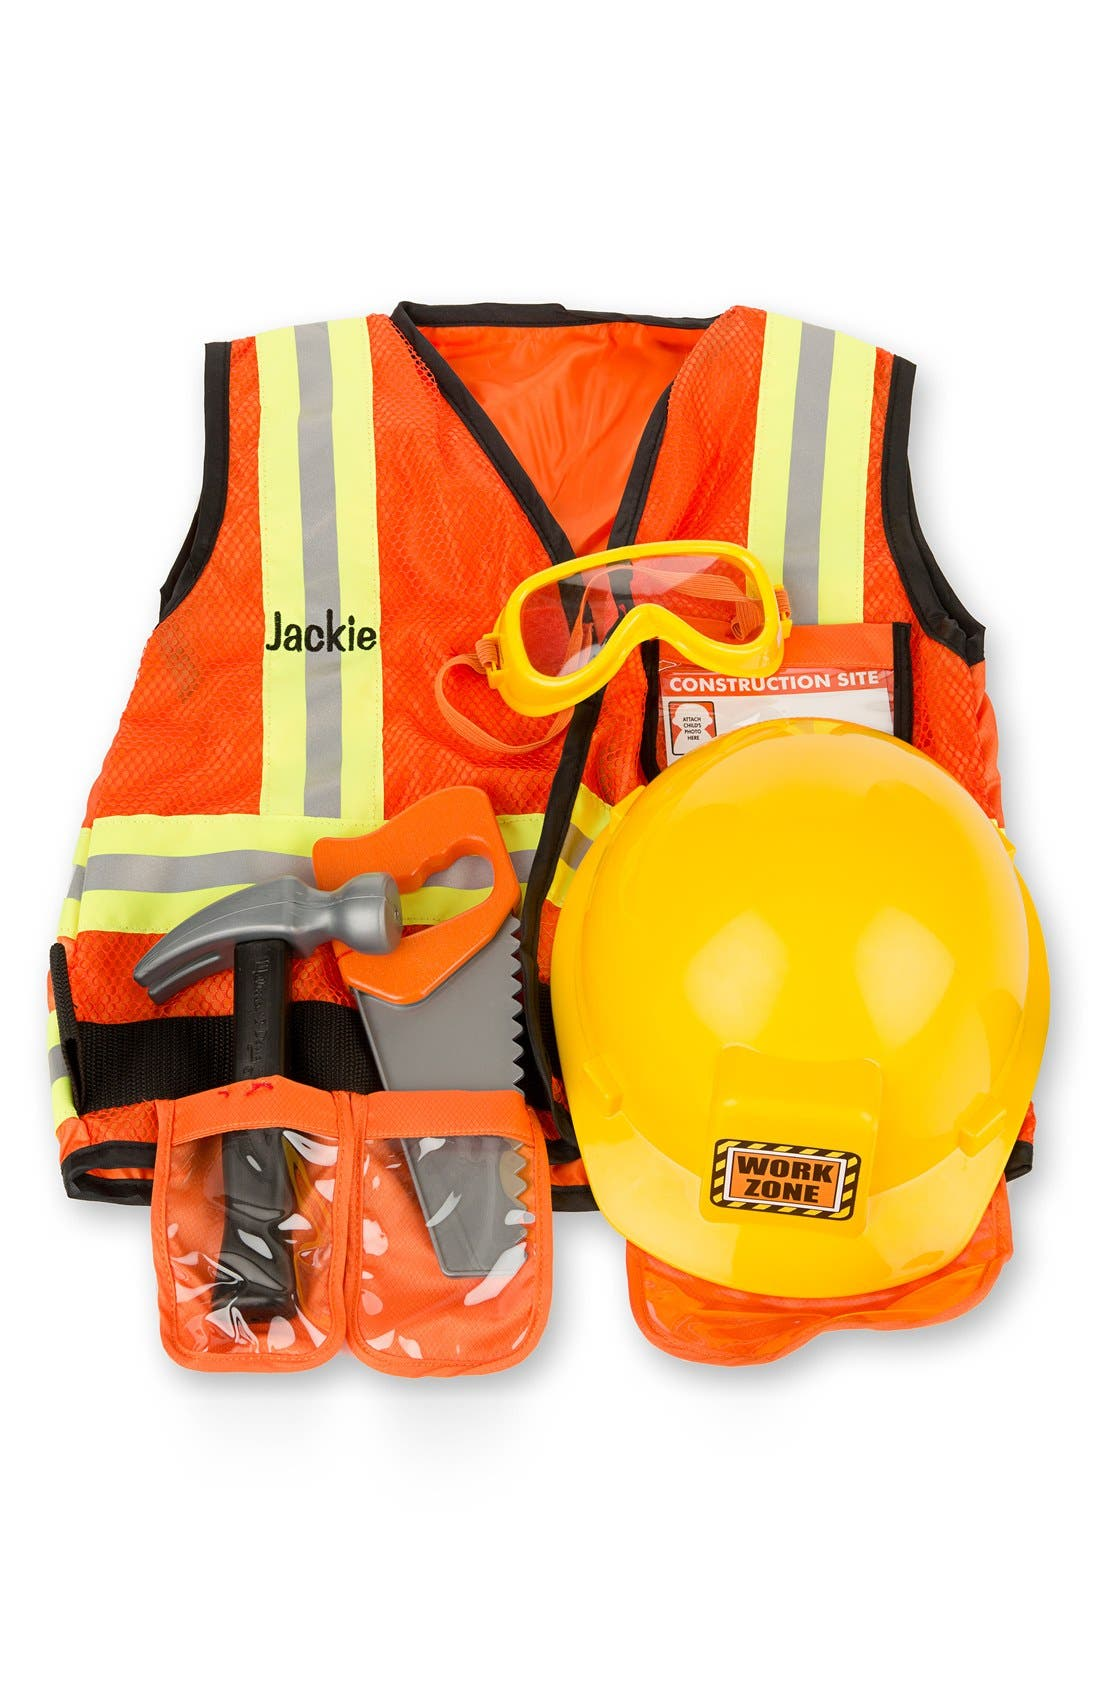 Main Image - Melissa & Doug 'Construction Worker' Personalized Costume Set (Little Kid)